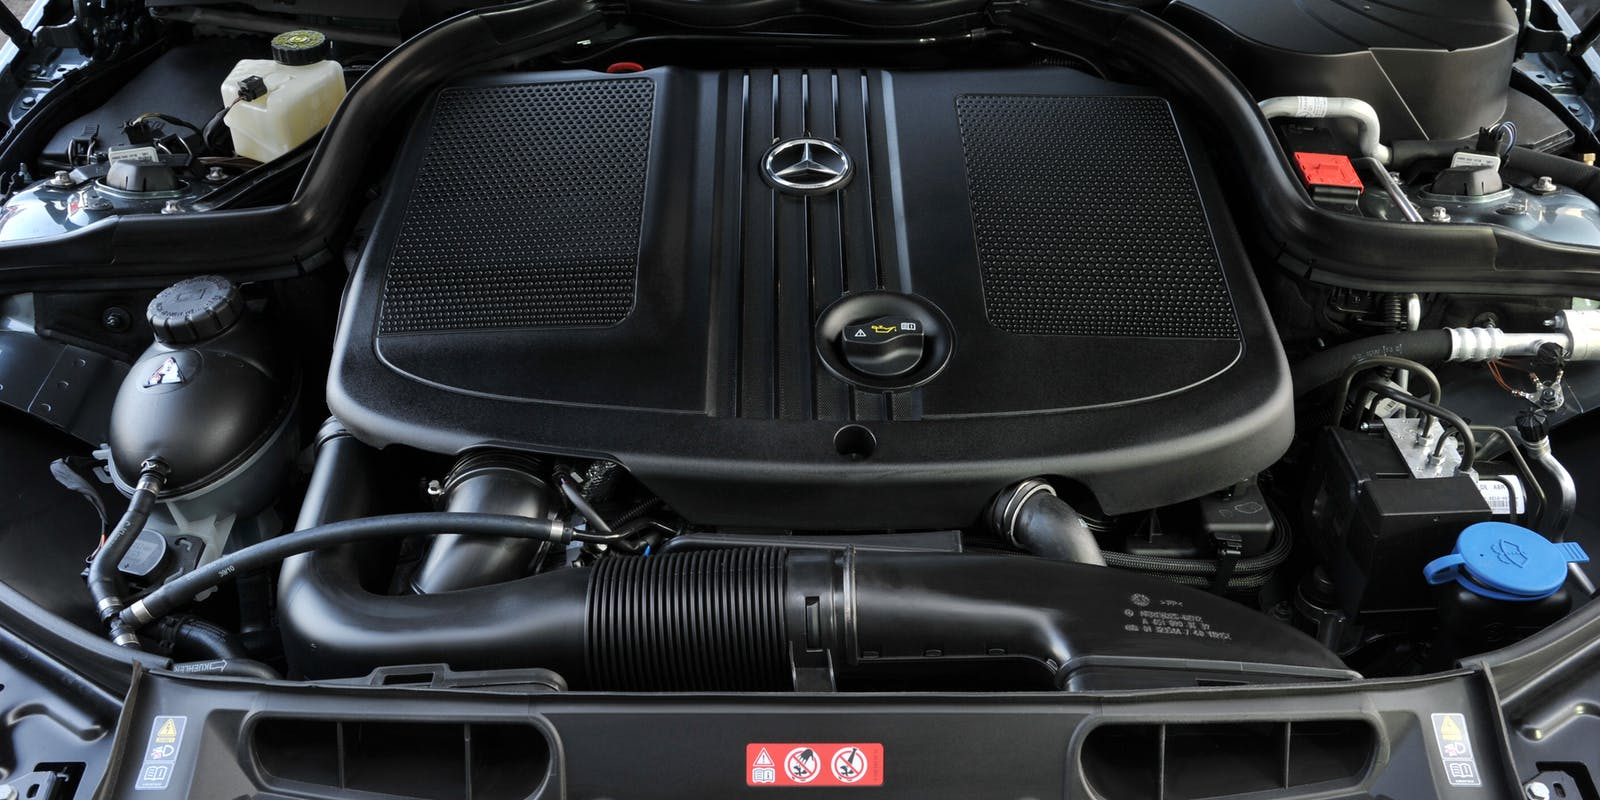 Mercedes c class review carwow for Mercedes benz c300 engine